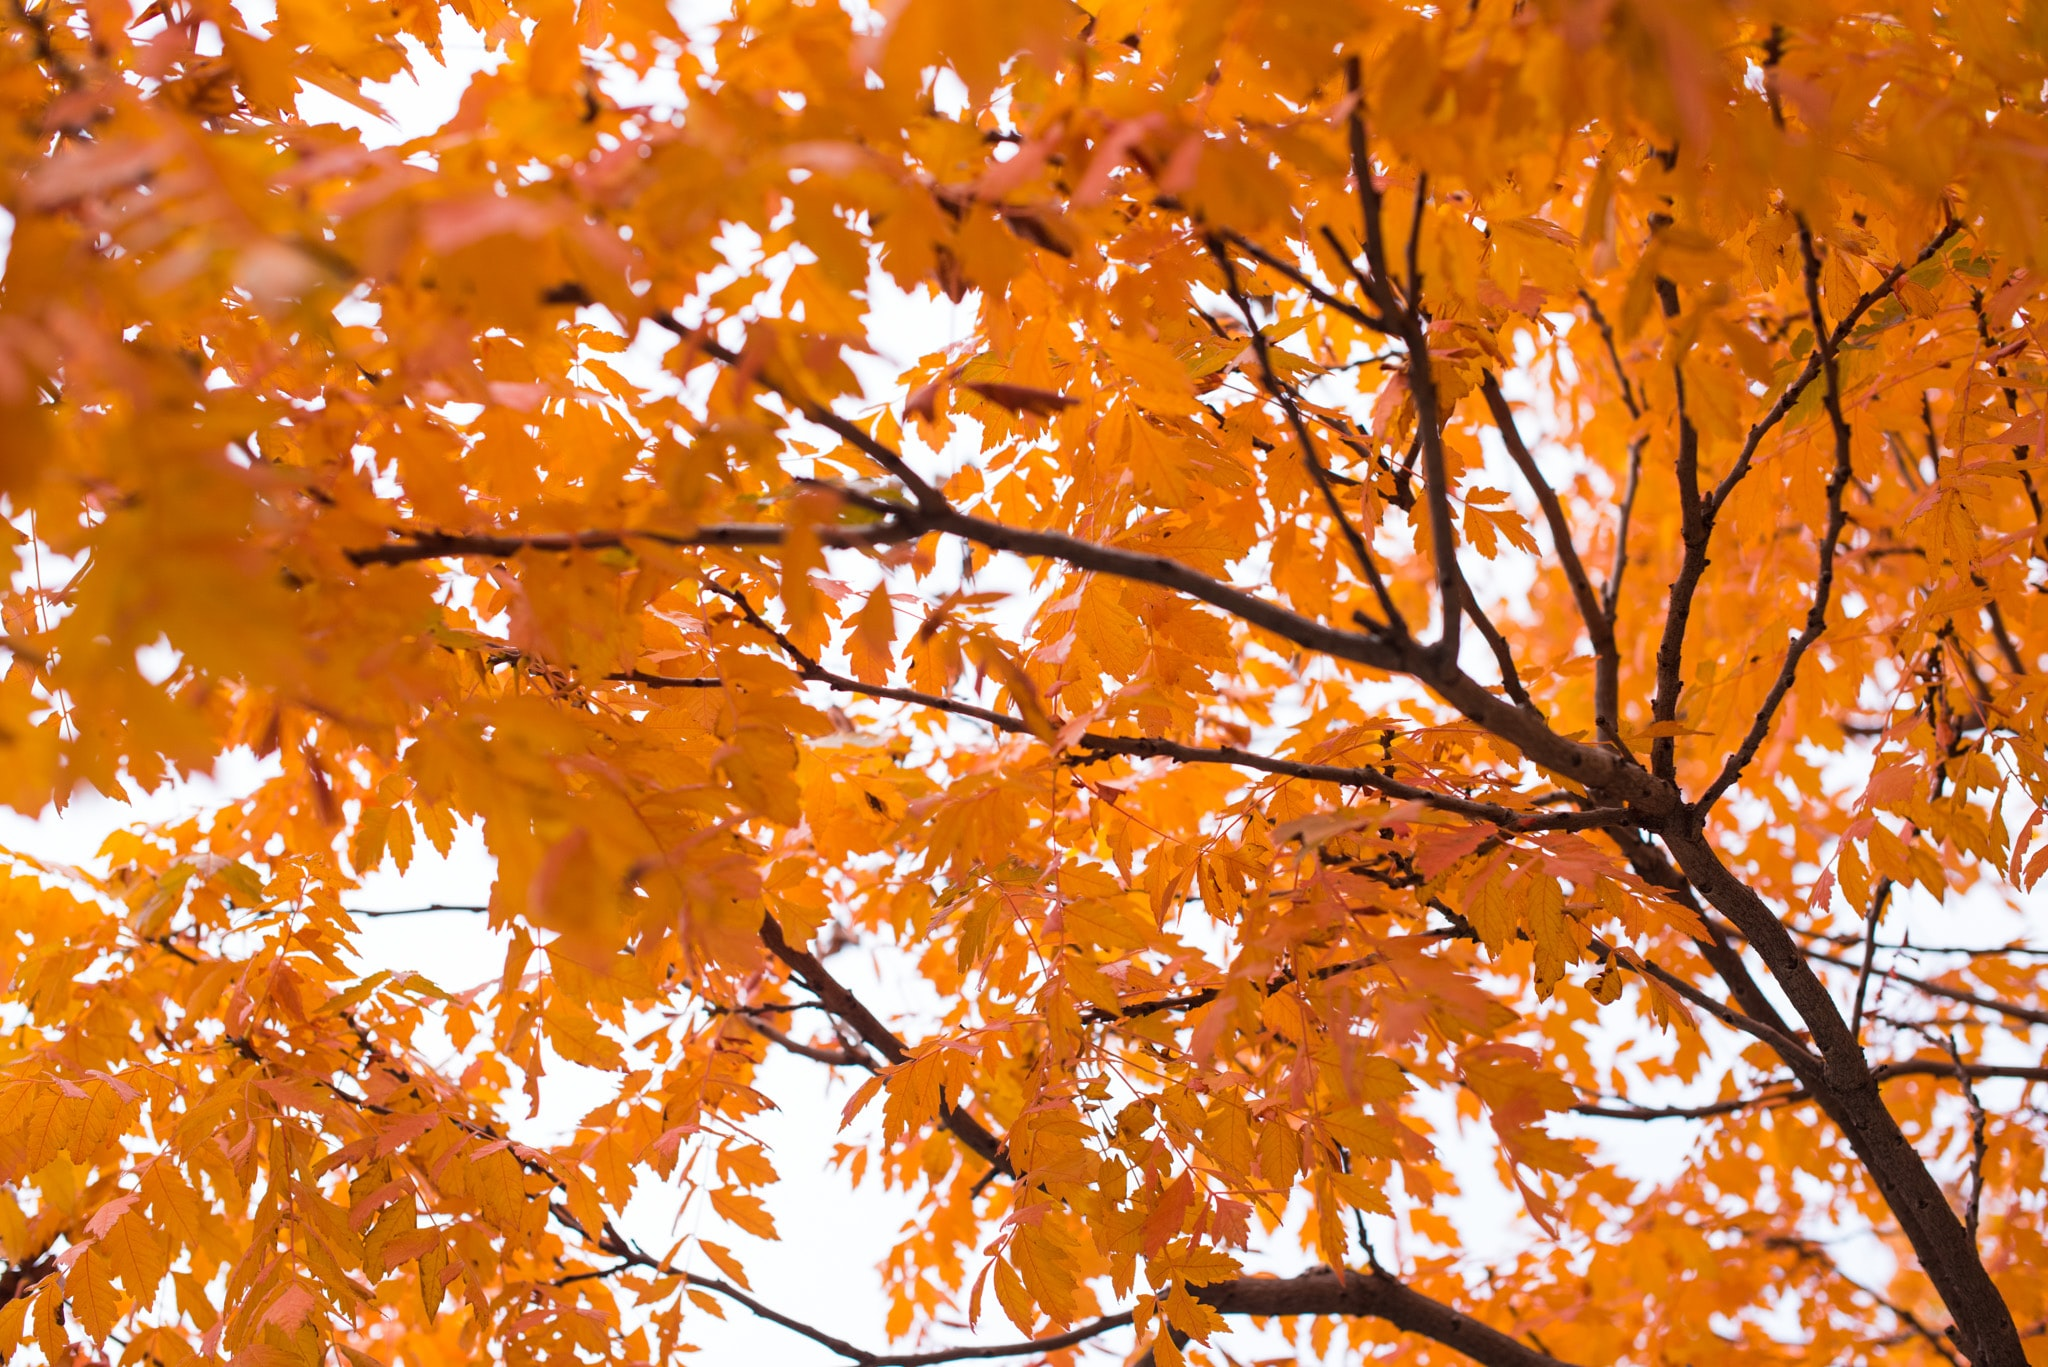 Orange leaves on a tree form a canopy against a pale sky